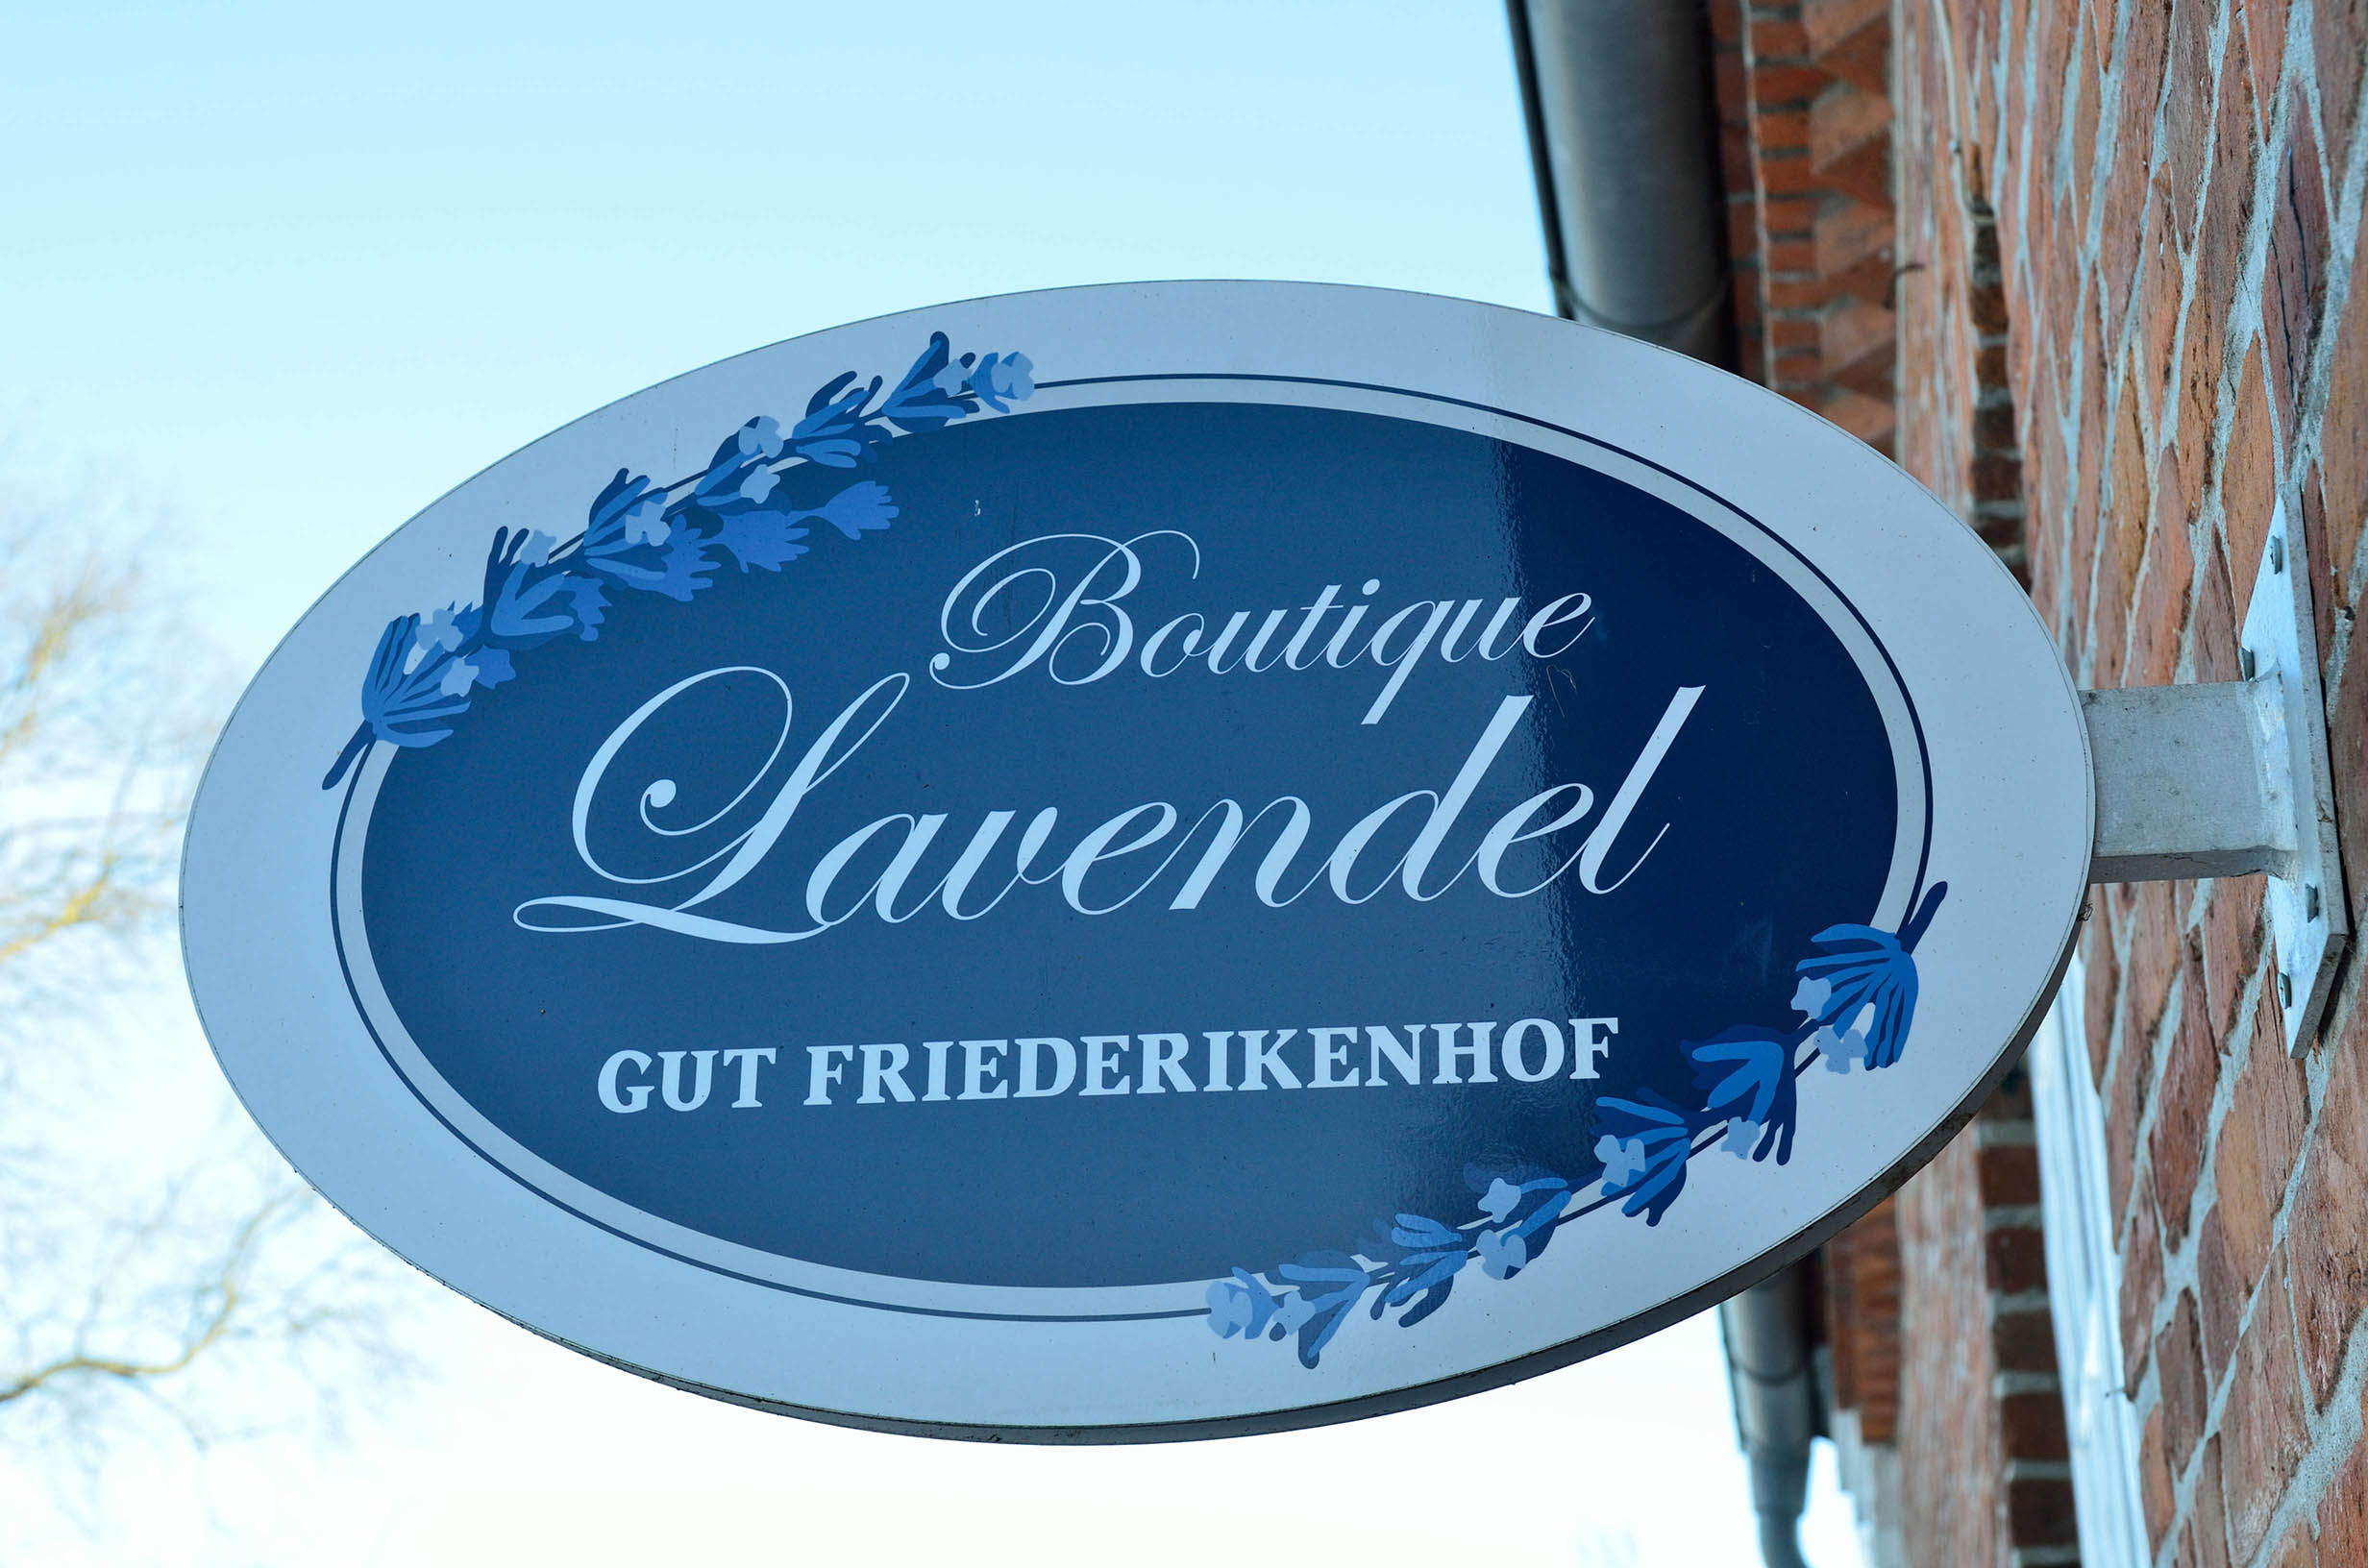 Gut Friederikenhof